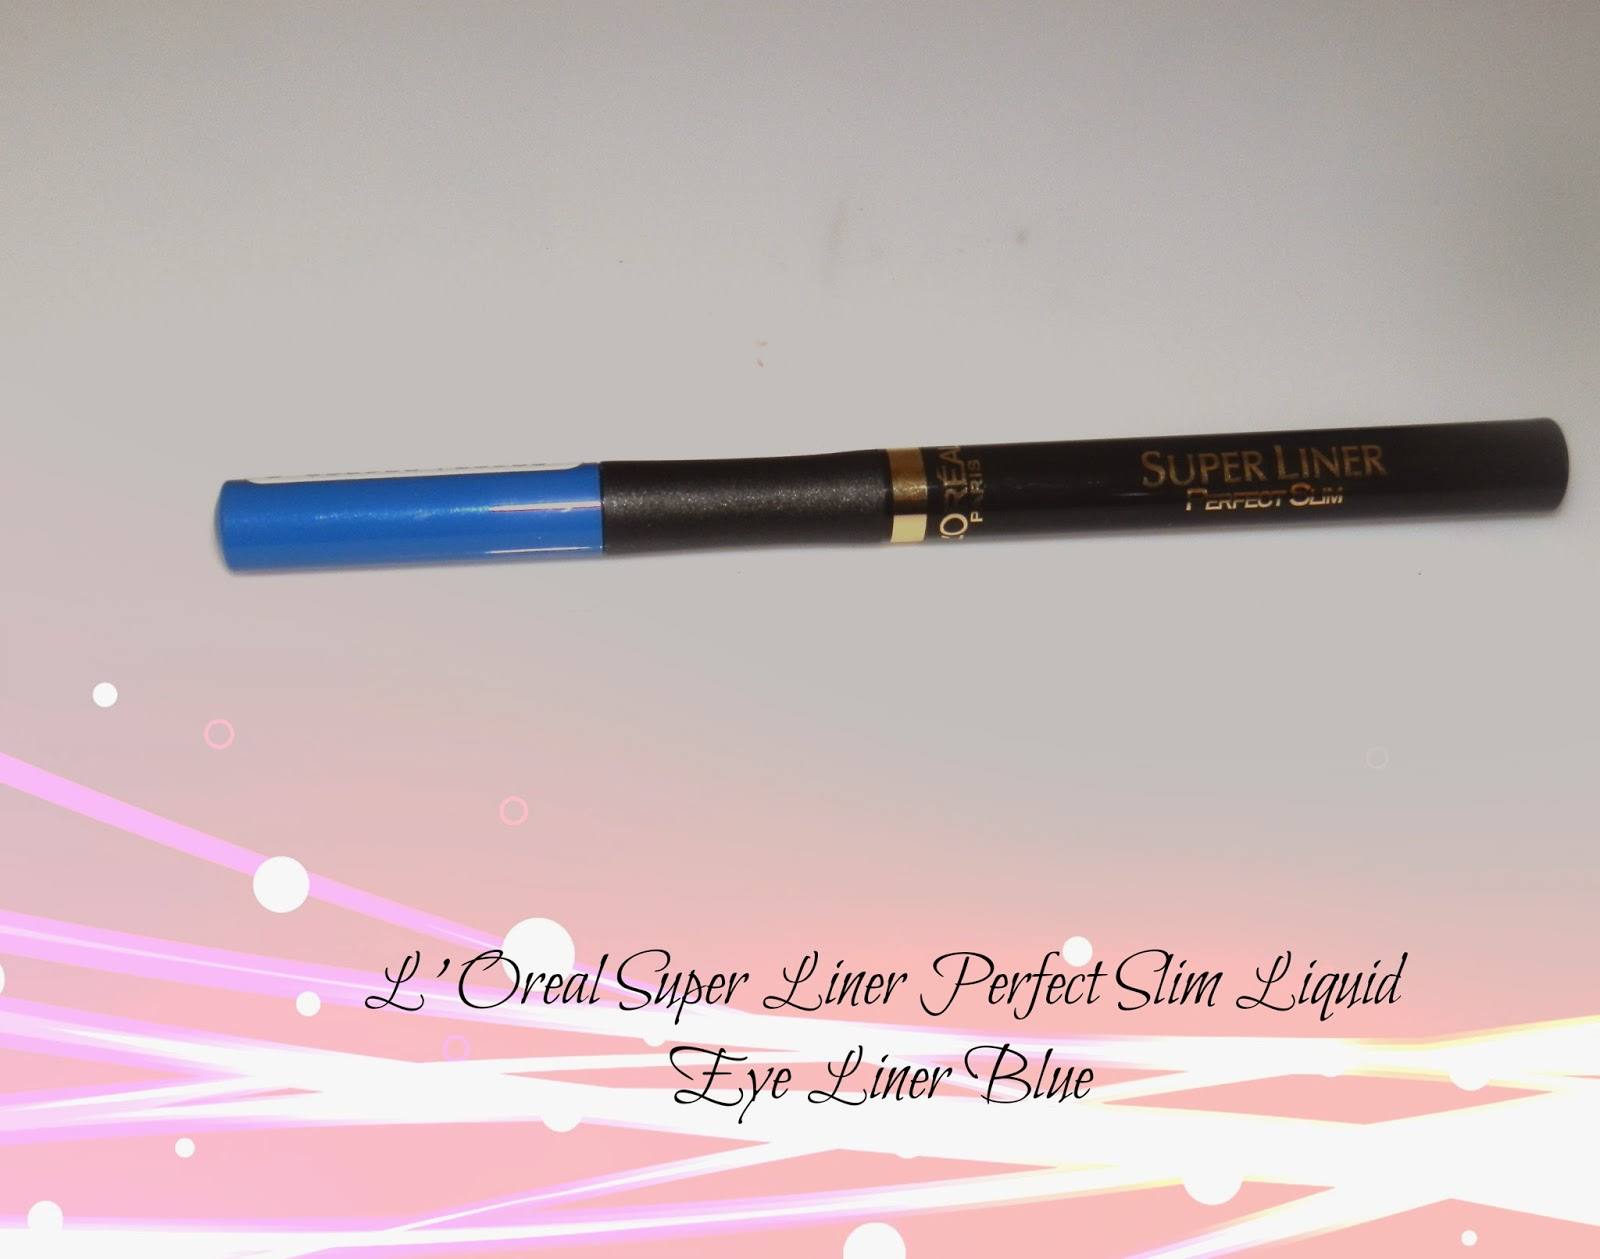 Mystical Make Up and Beauty - L'Oreal Super Liner Perfect Slim ...